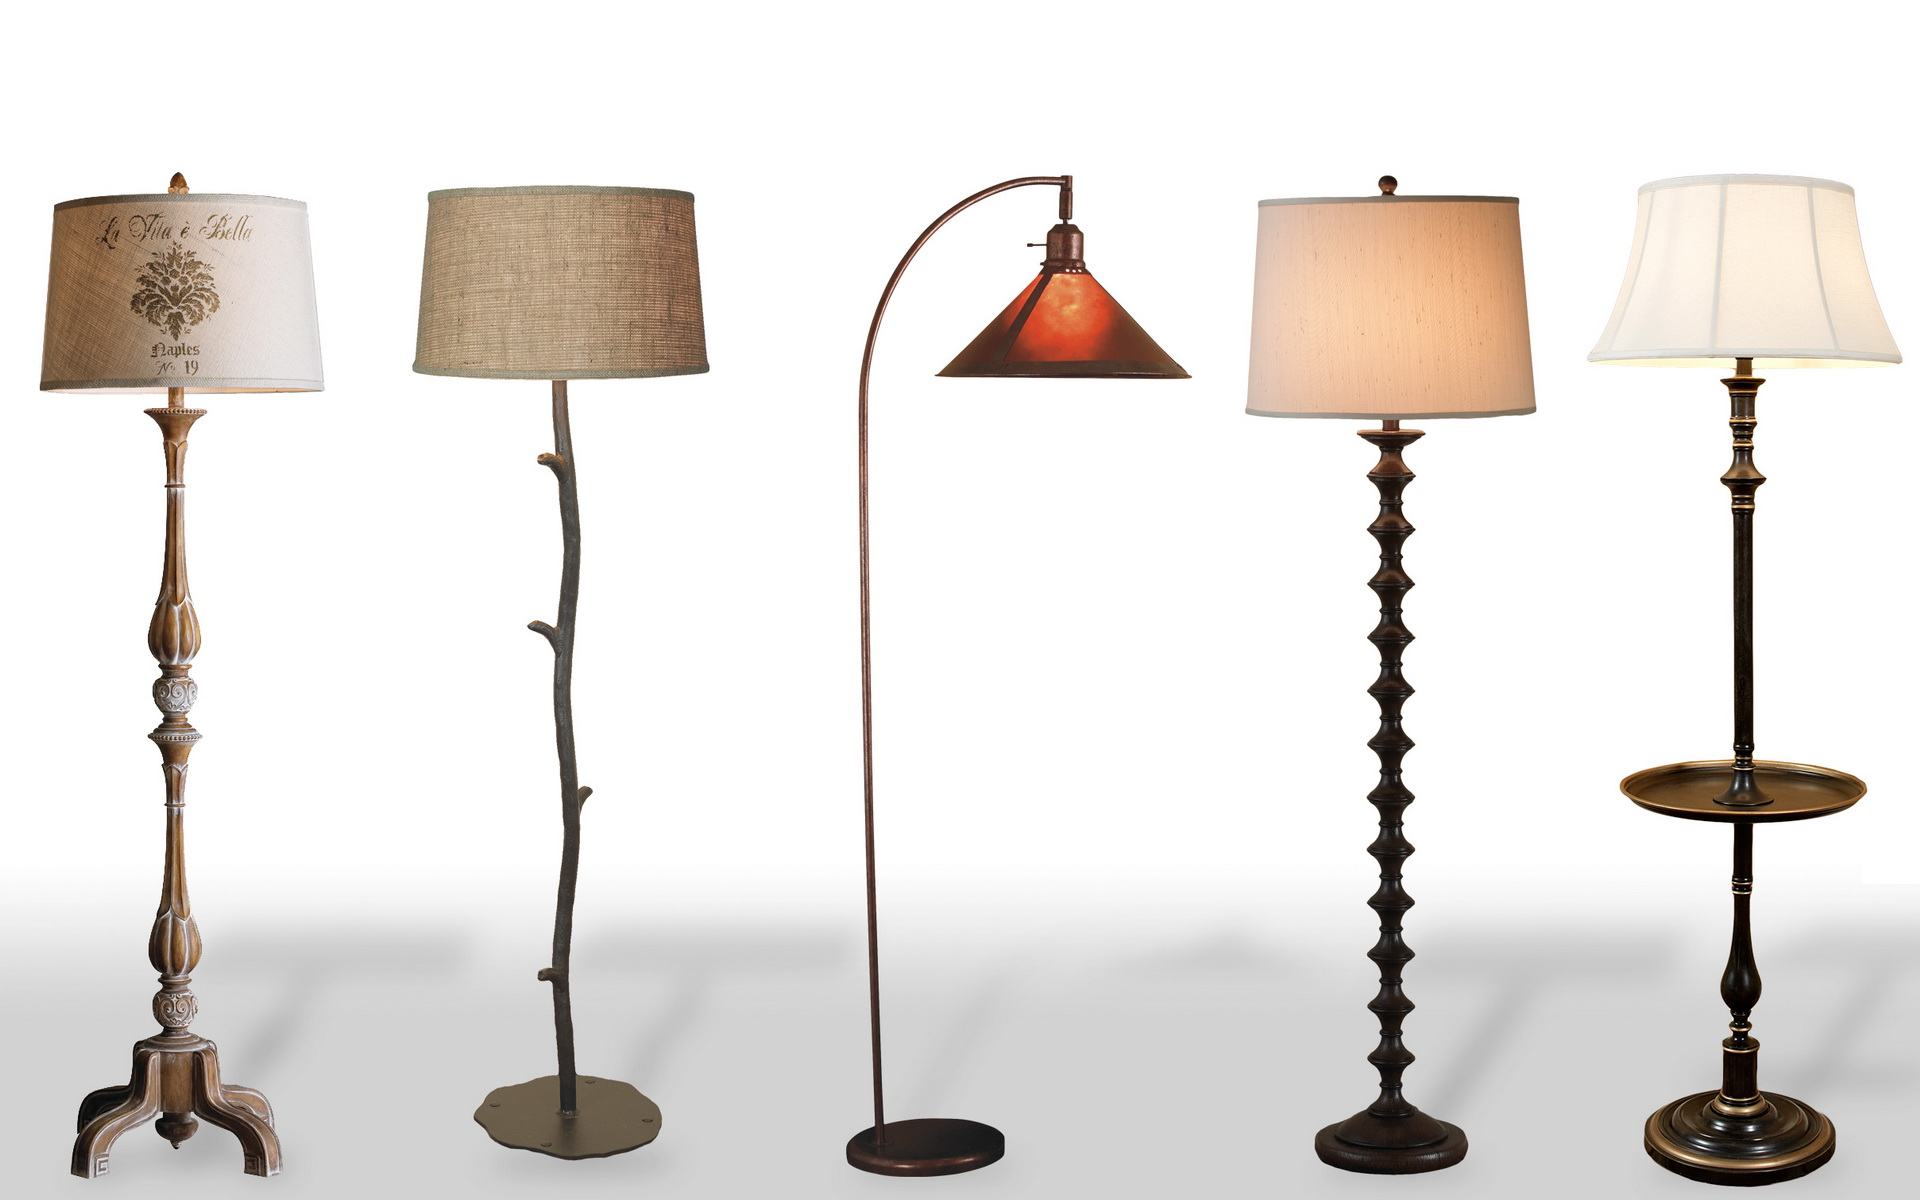 flor lamps from germany